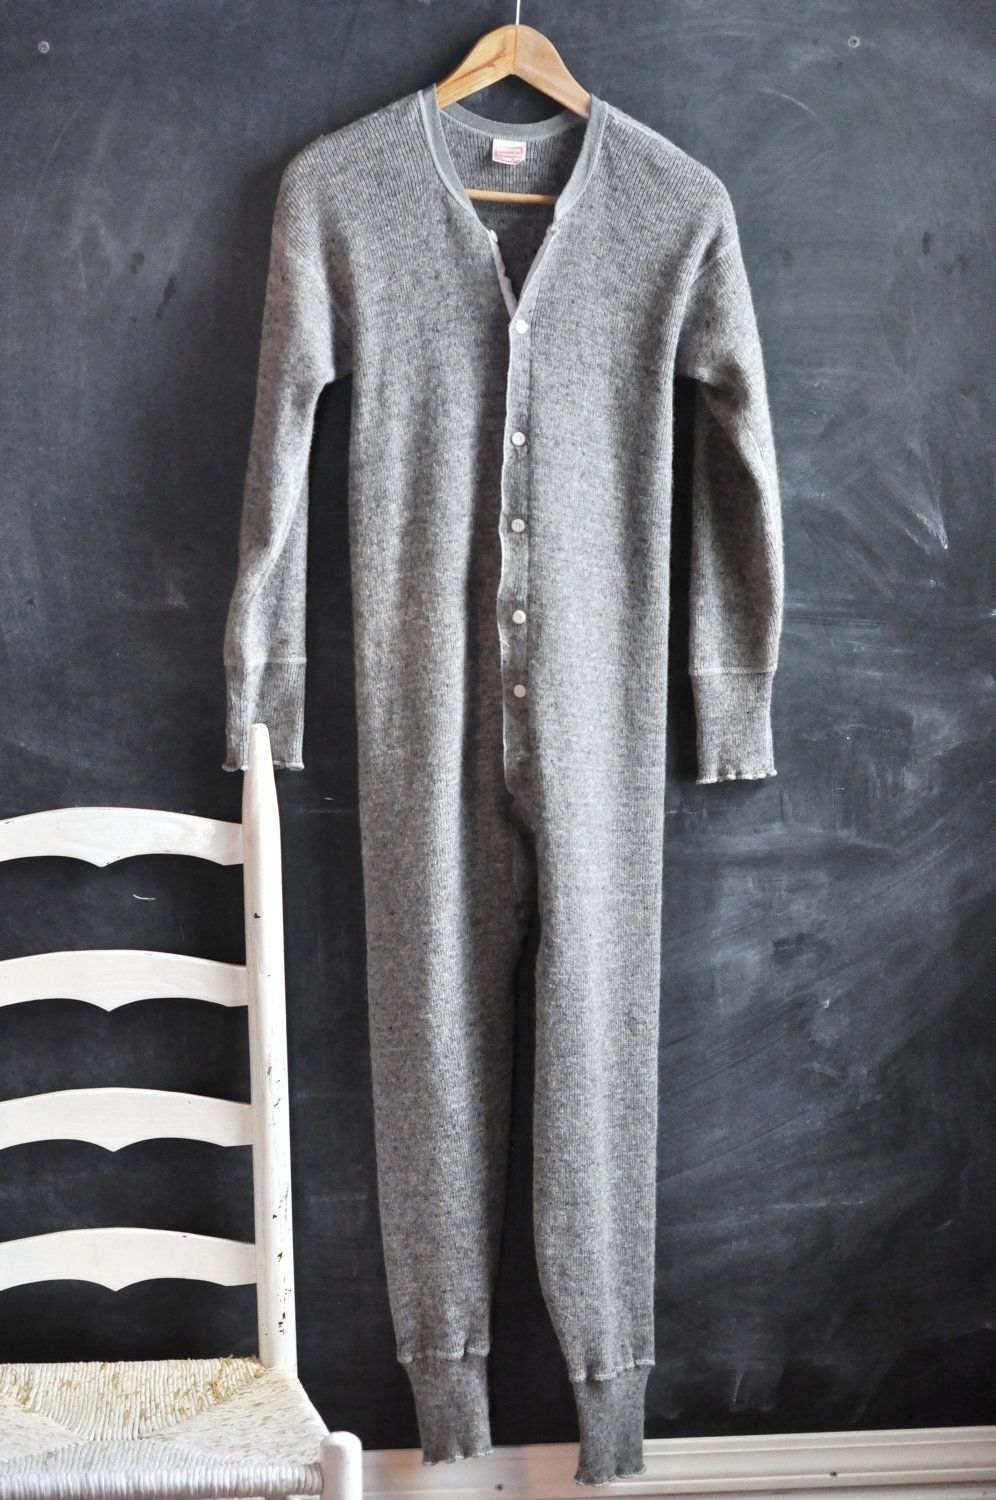 Vintage Wool Union Suit Long Underwear Unisex Winter Warmth. I NEED this. 32a072a6c2c